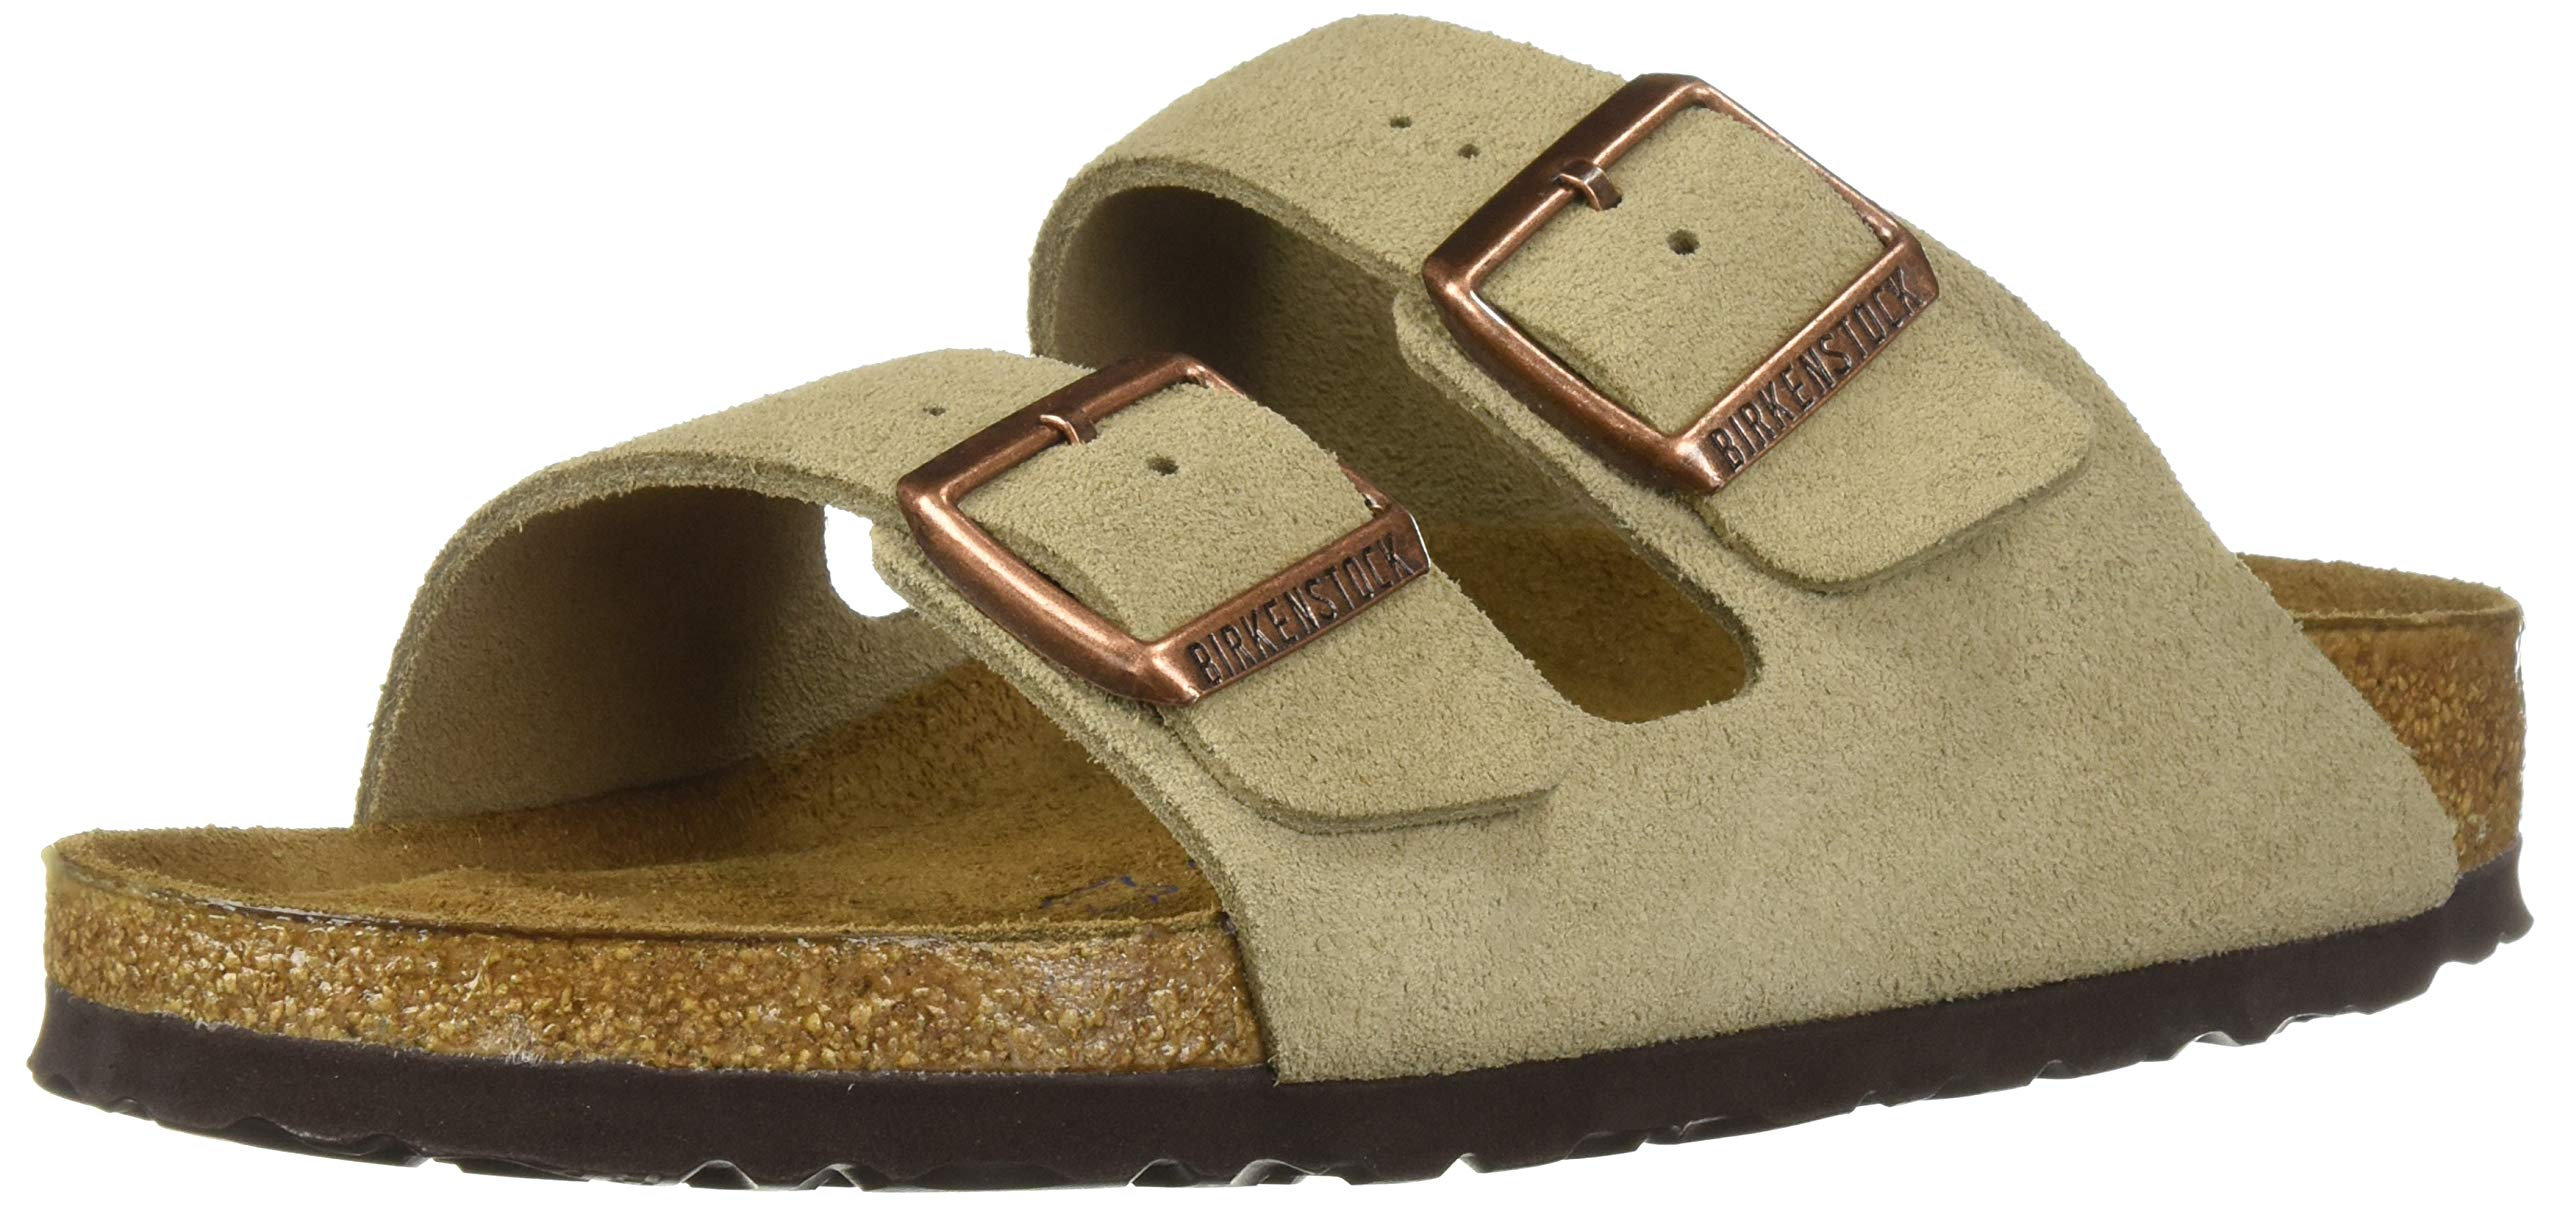 Birkenstock Unisex Arizona Taupe Suede Soft Foot Bed Sandals - 42 N EU / 11-11.5 2A(N) US